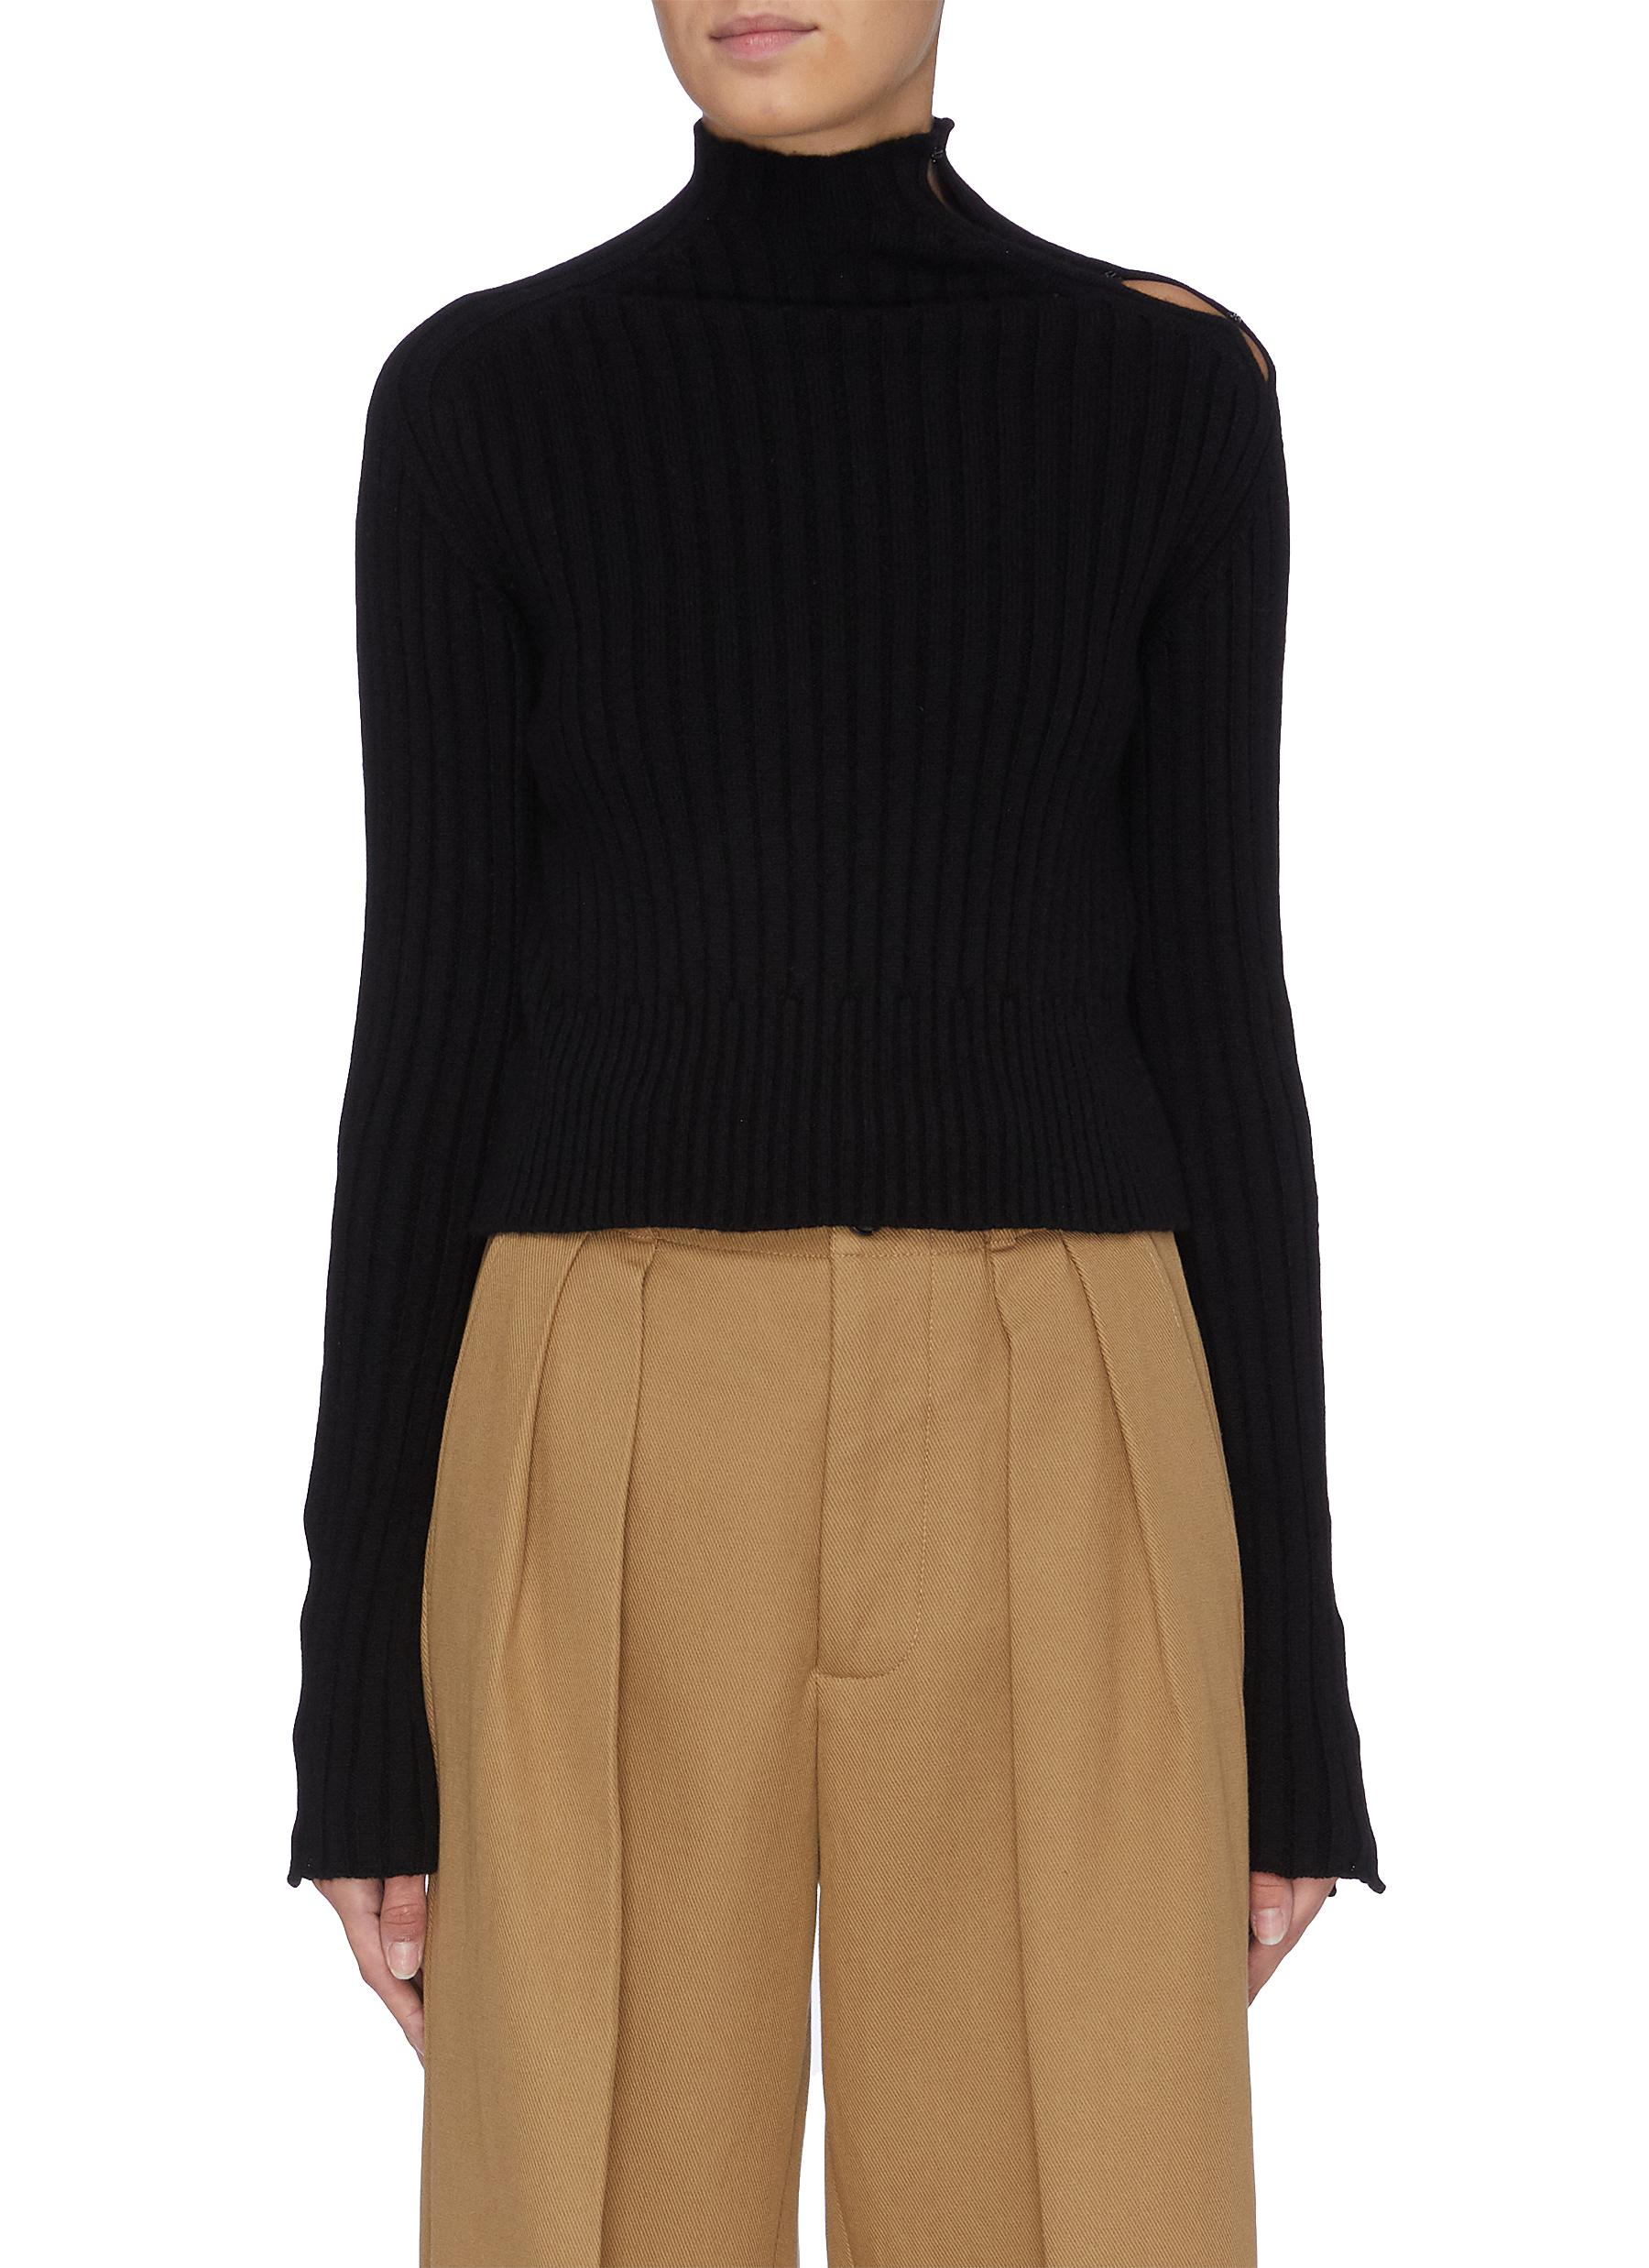 Hook-and-eye cold shoulder rib knit high neck sweater by Petar Petrov